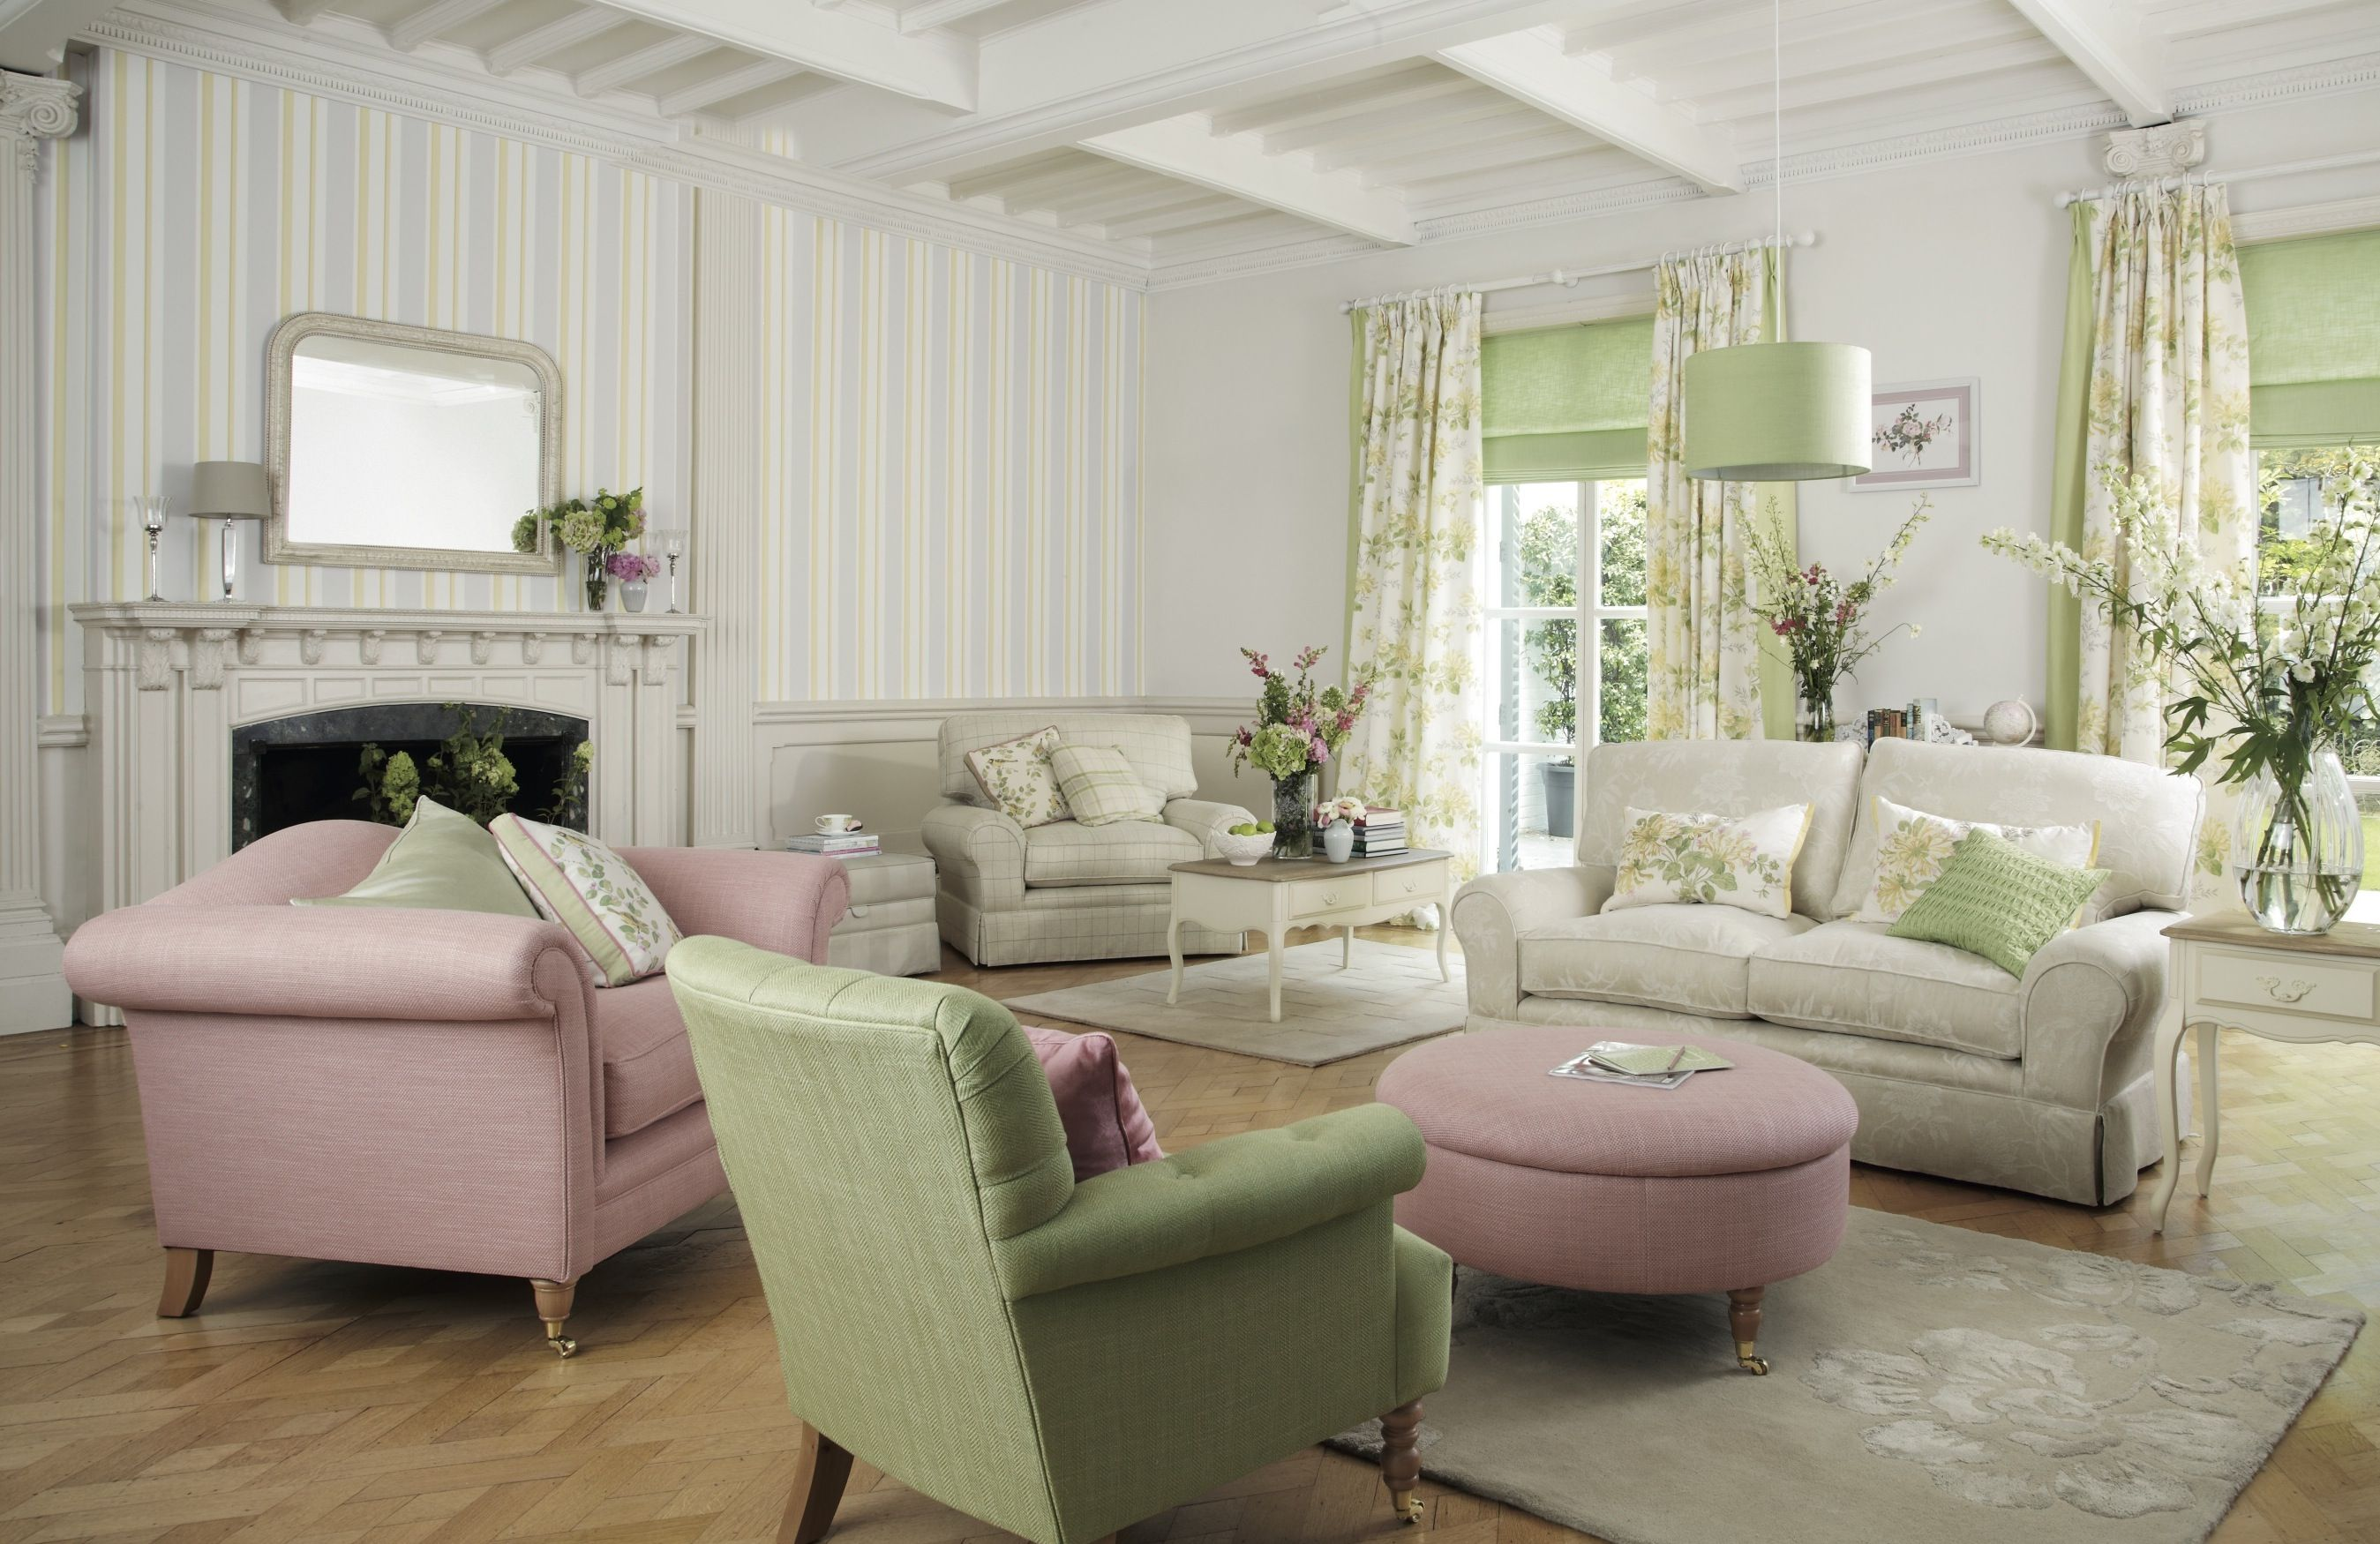 Best Adore This Look For The Front Room Honeysuckle Curtains 400 x 300